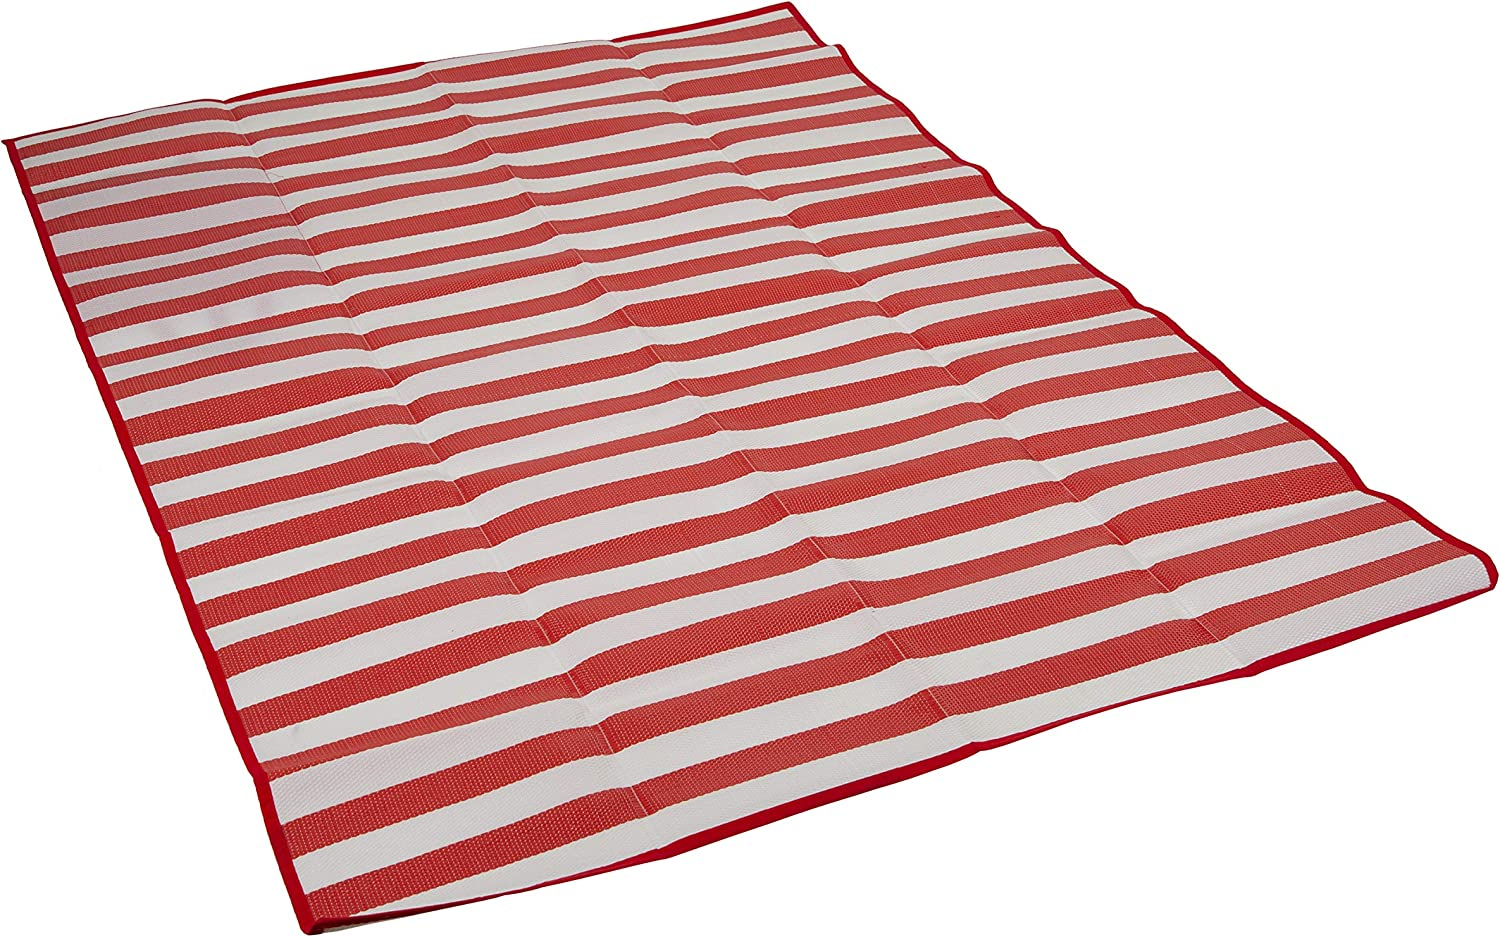 STANSPORT - Tatami Ground Mat for Indoor or Outdoor Use for Camping & the Beach (60 in x 78 in, Red)